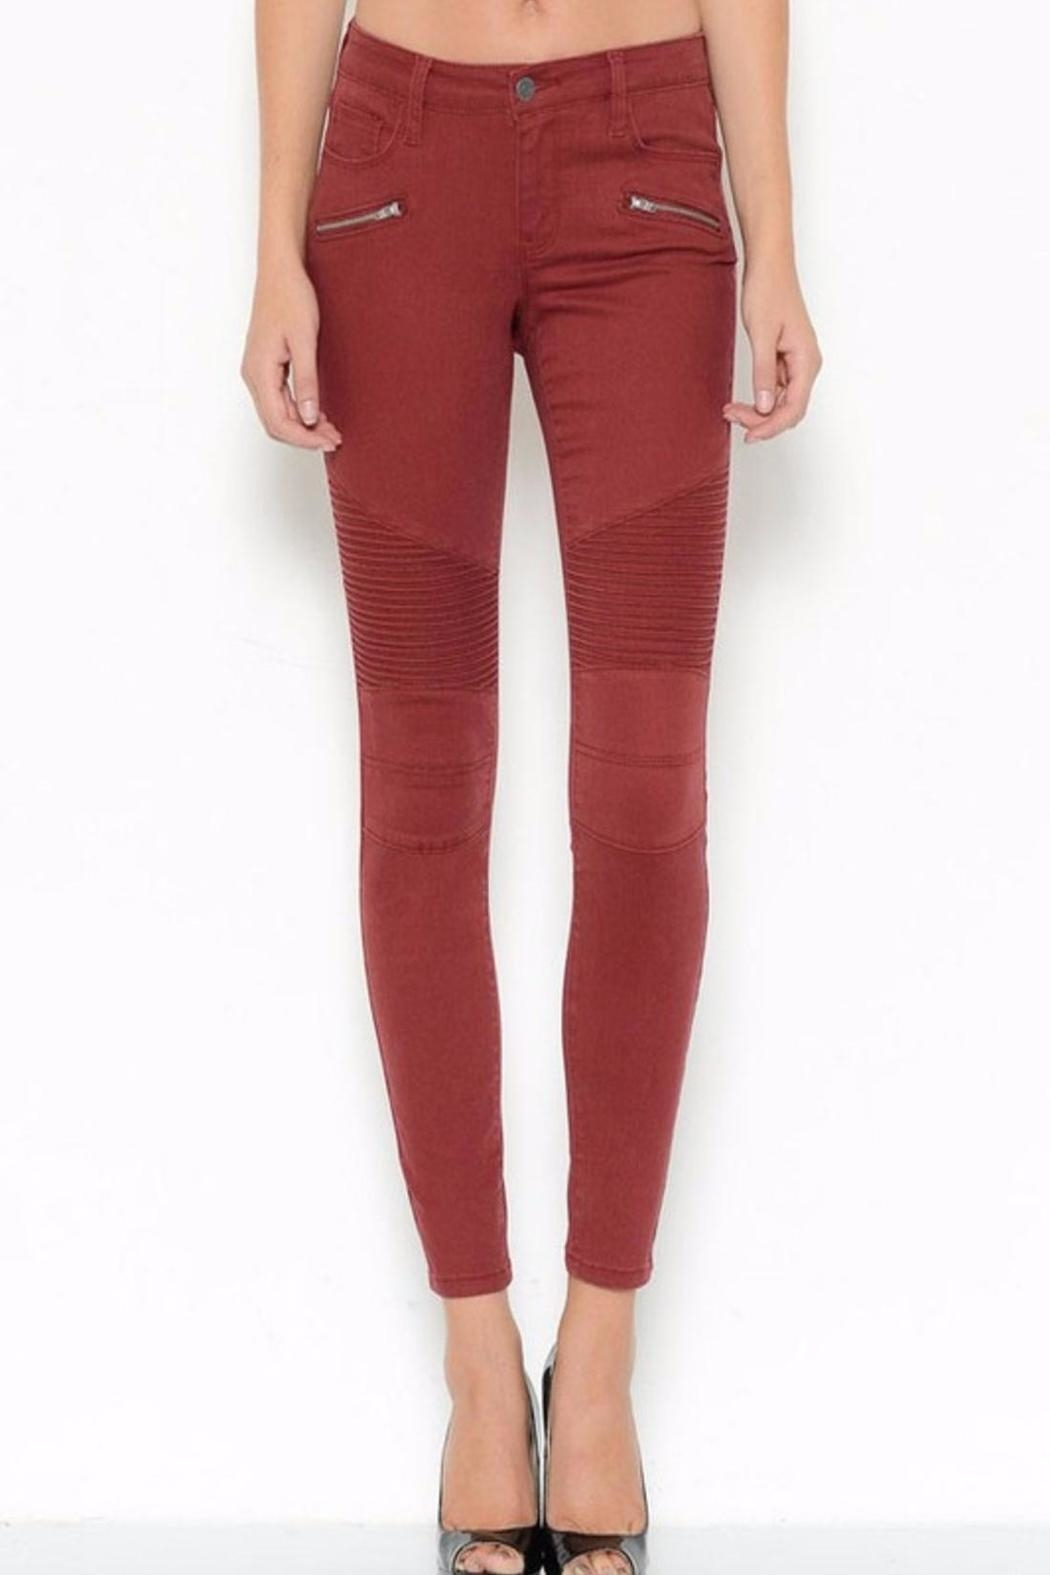 Cello Jeans Burgandy Skinny Jeans - Main Image